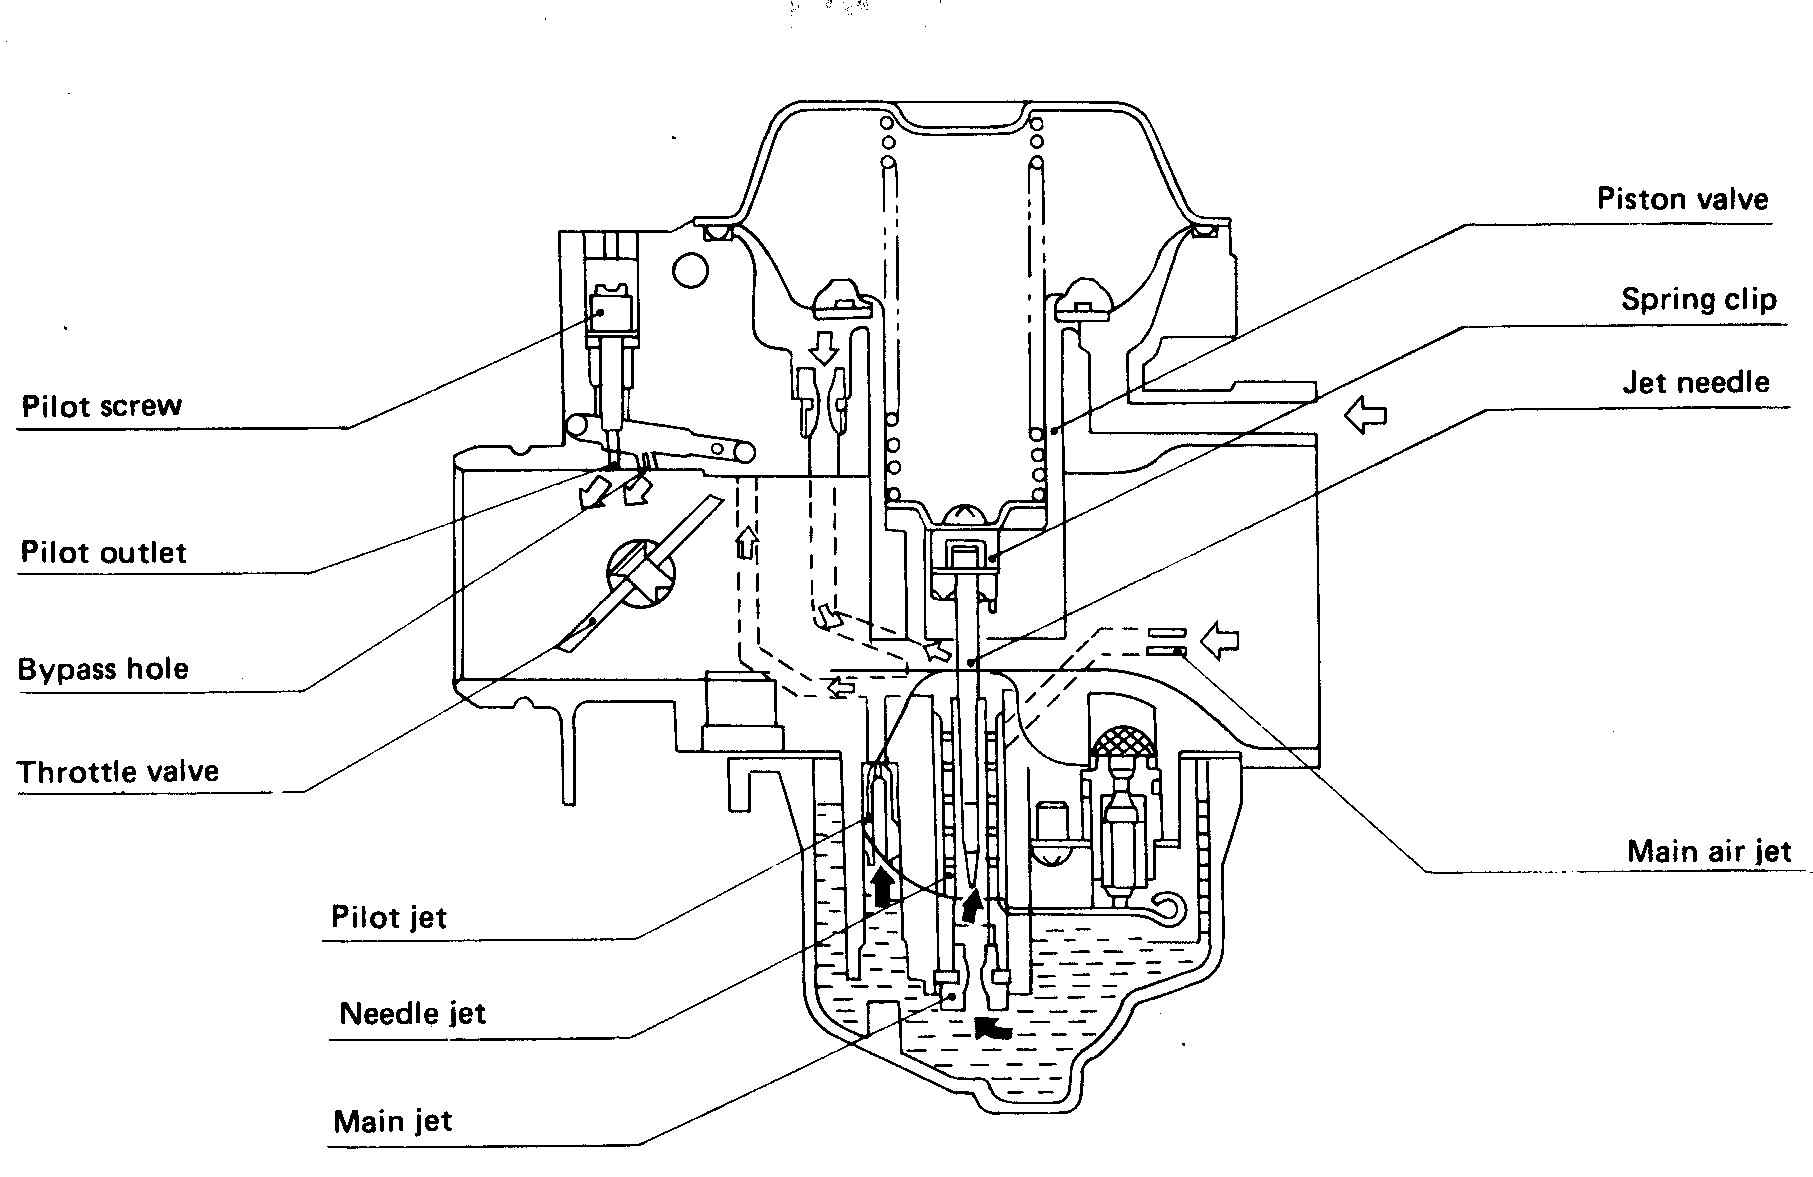 hight resolution of harley carb diagram wiring diagram for you roketa 150cc scooter wiring diagram kz650 info cv carb